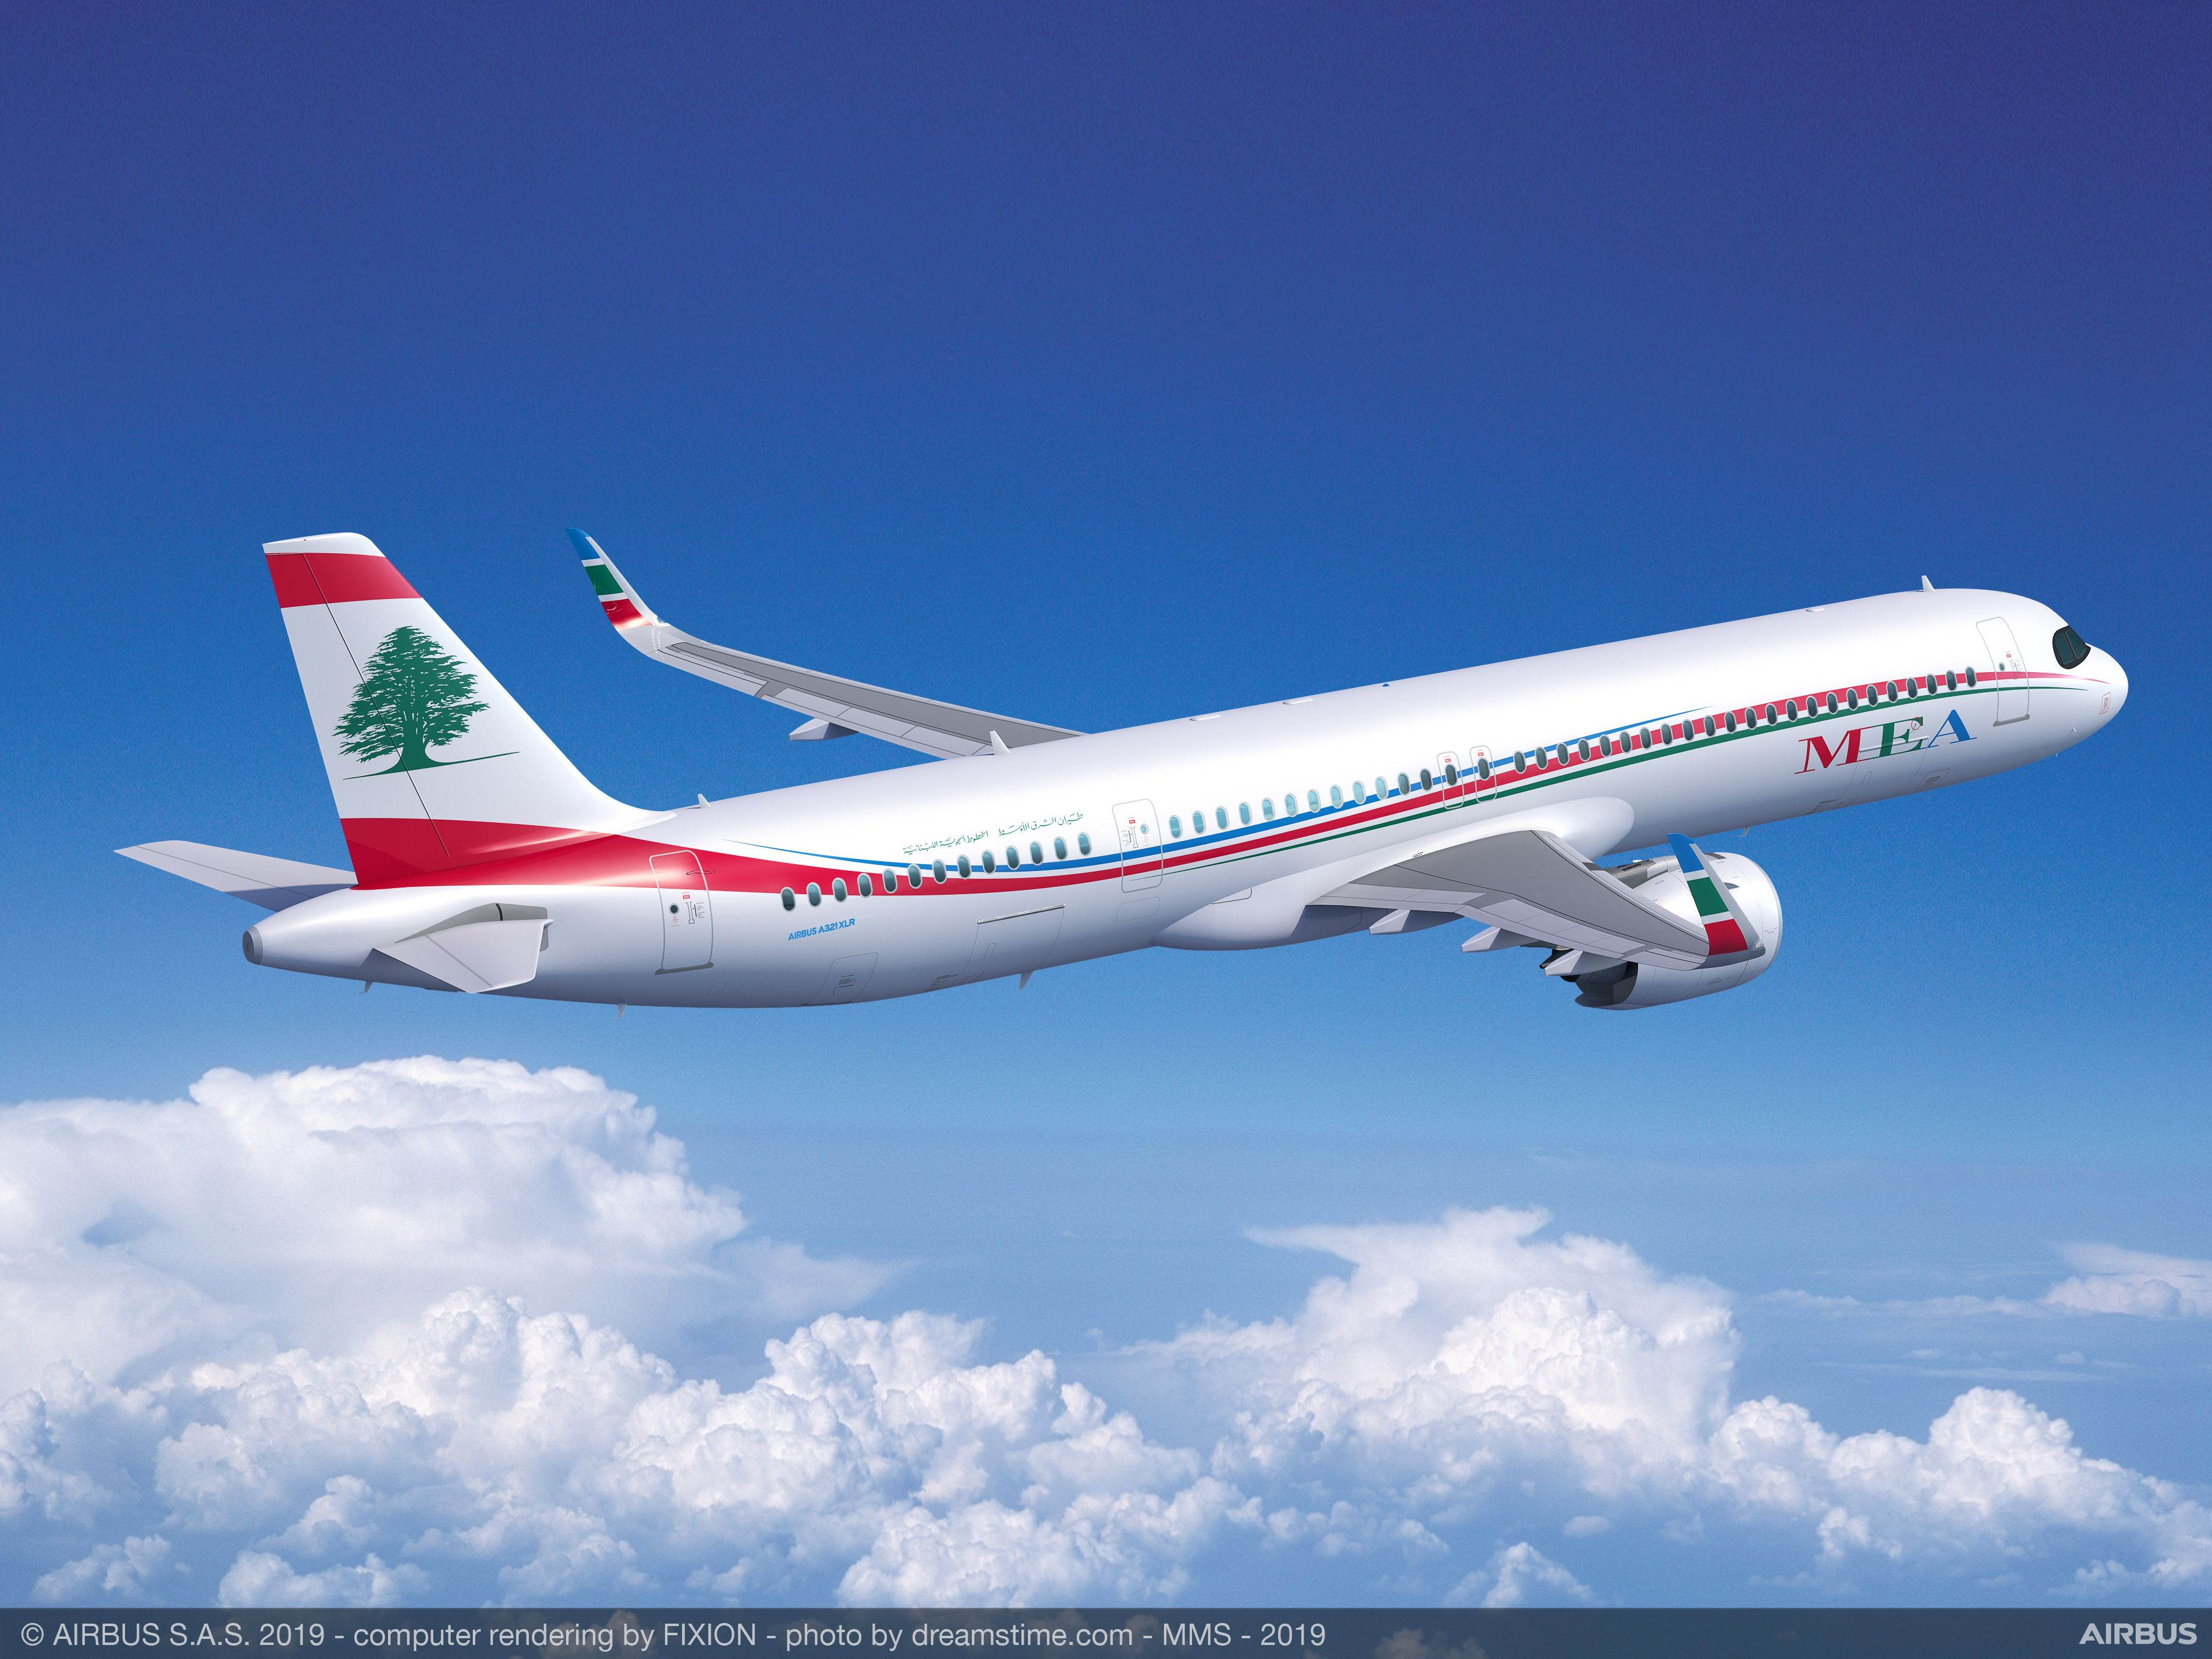 Airbus A321 XLR i Middle East Arlines bemaling (Illustration: Airbus)